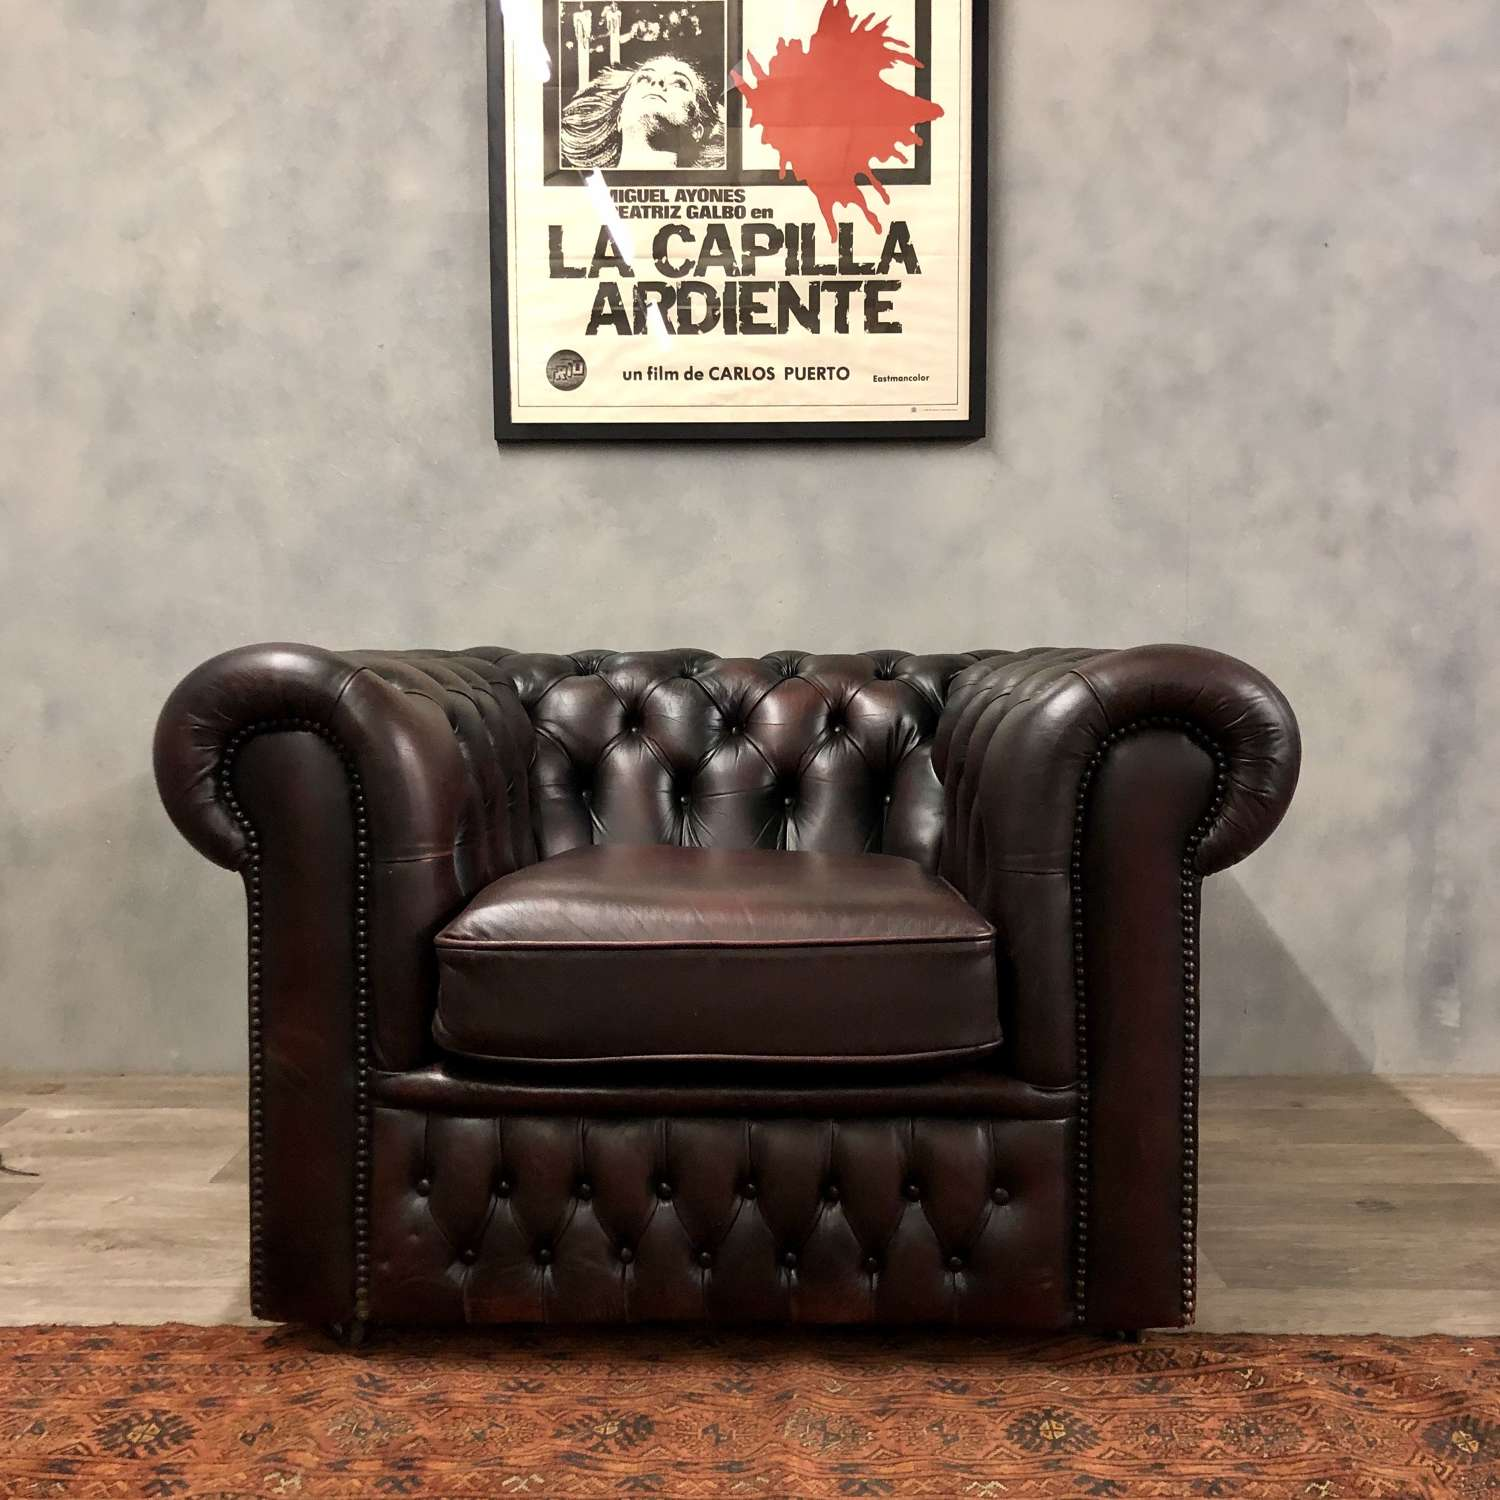 Classic vintage chesterfield chair in Oxblood